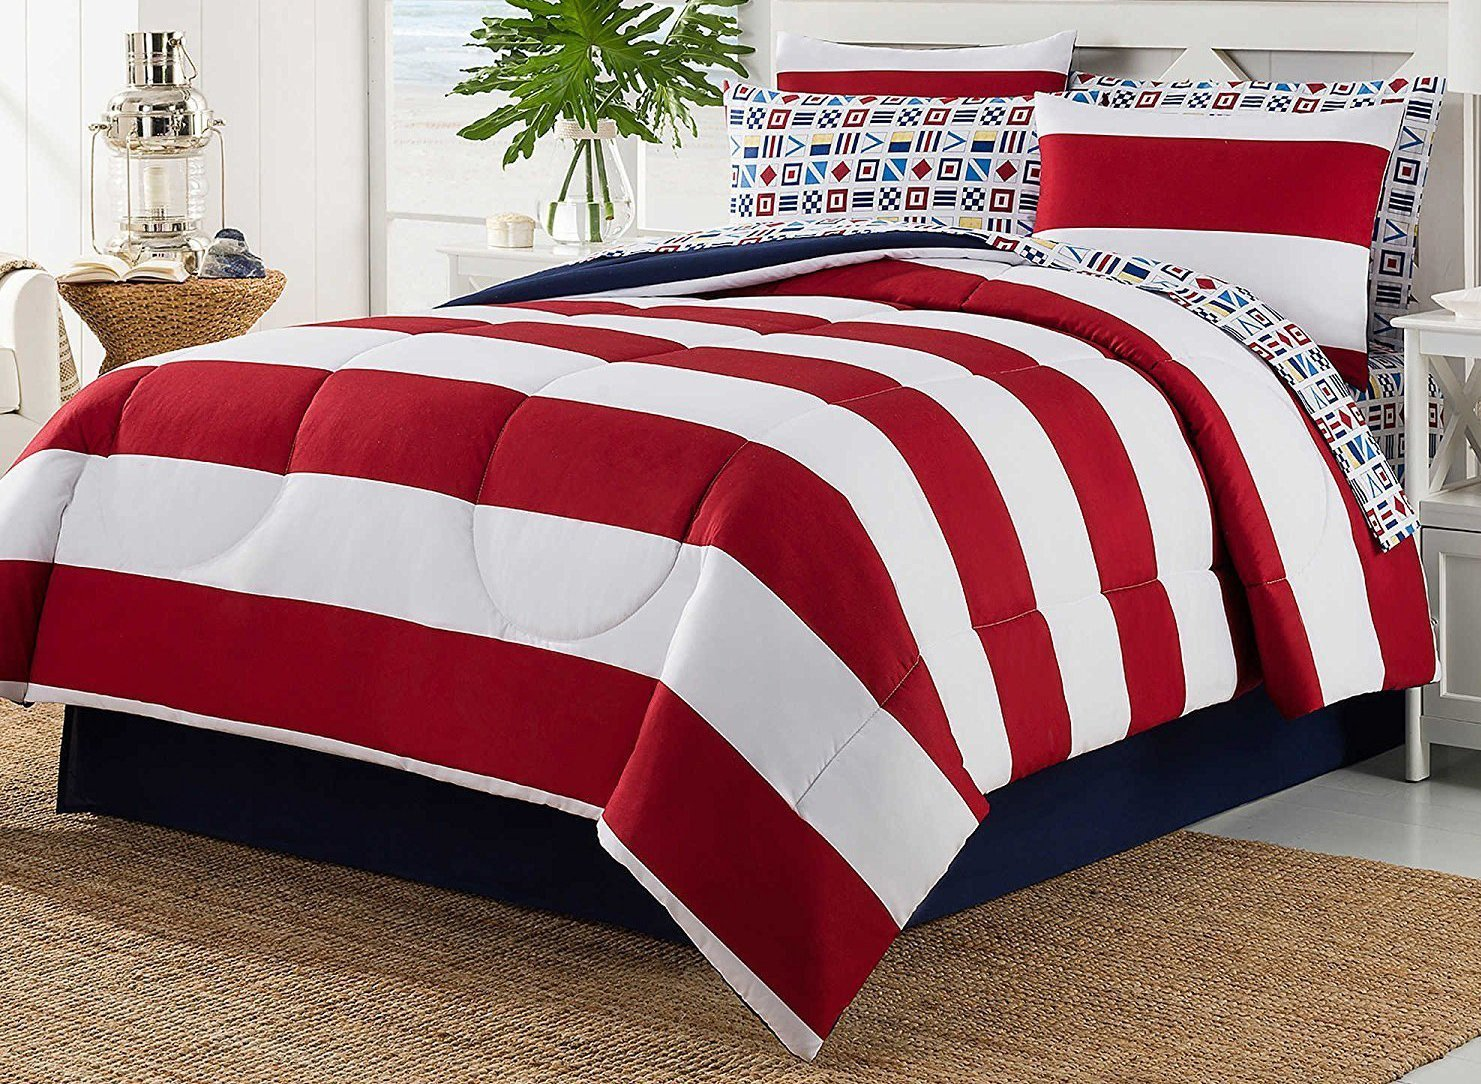 Dovedote 8 Piece Bed in Bag Rugby Comforter Cotton Sheet Set (Cal King)